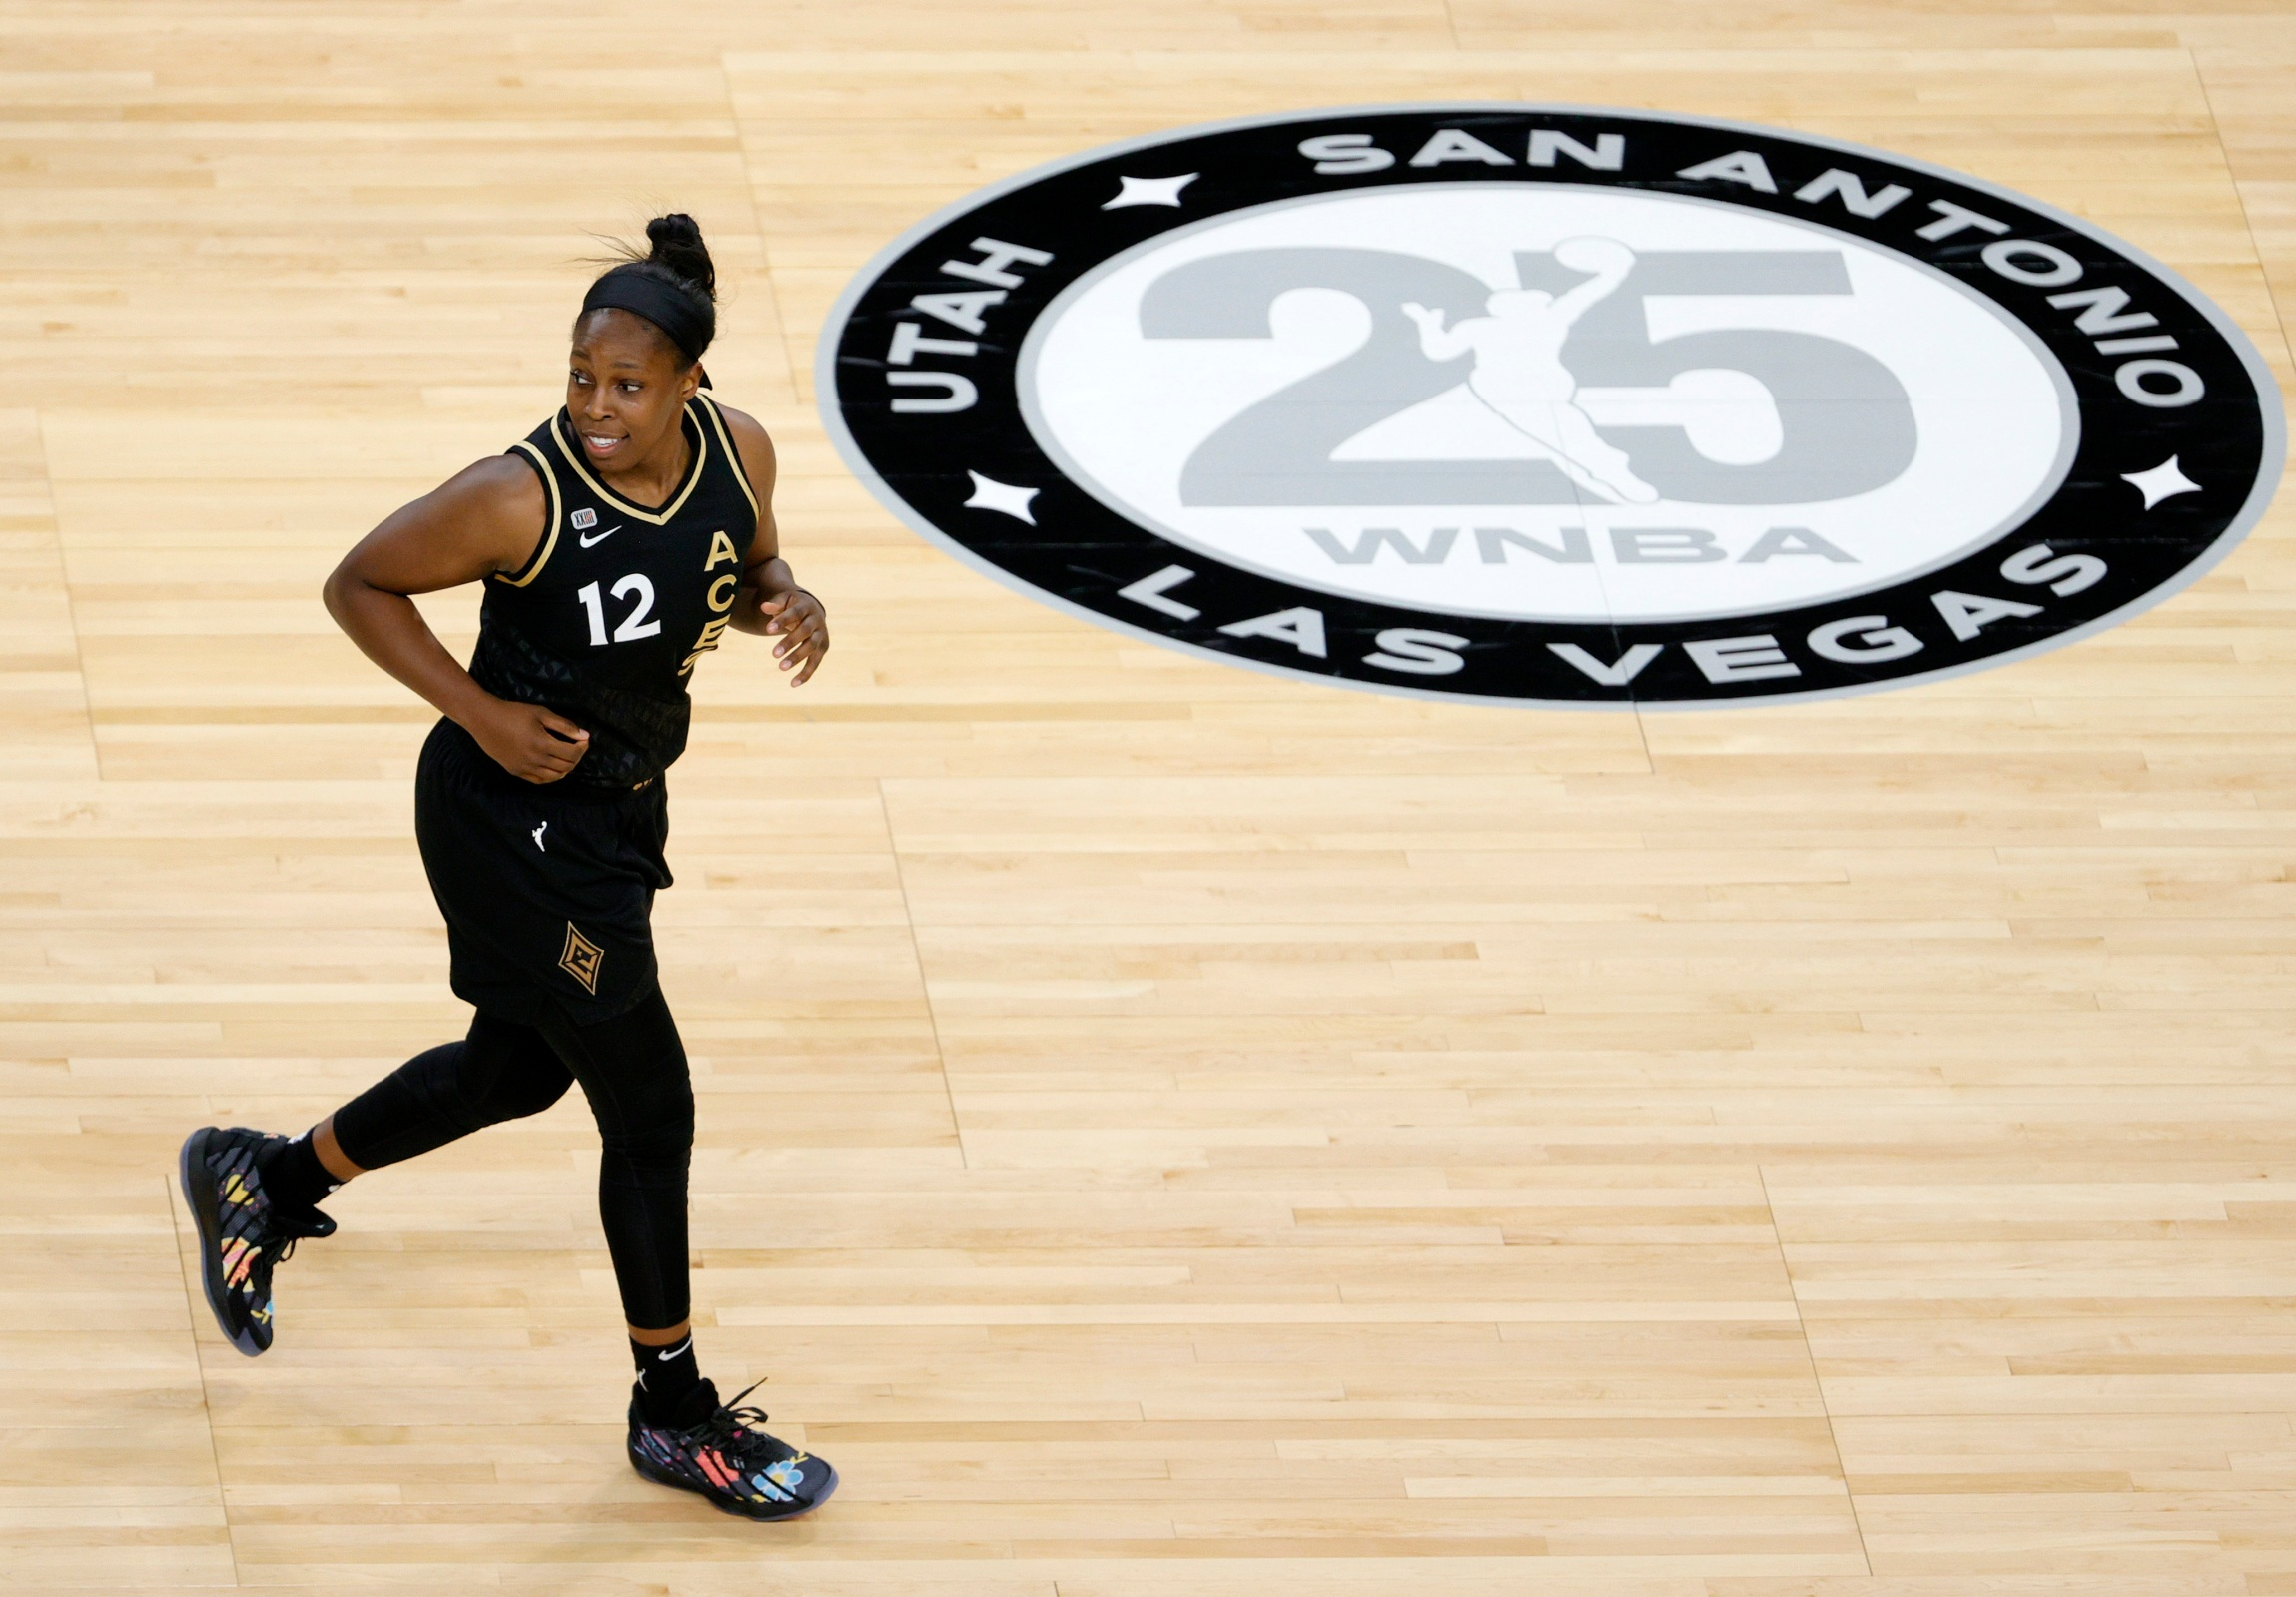 Chelsea Gray #12 of the Las Vegas Aces runs back on defense after scoring against the Los Angeles Sparks during their game at Michelob ULTRA Arena on May 21, 2021 in Las Vegas, Nevada. The Aces defeated the Sparks 97-69.